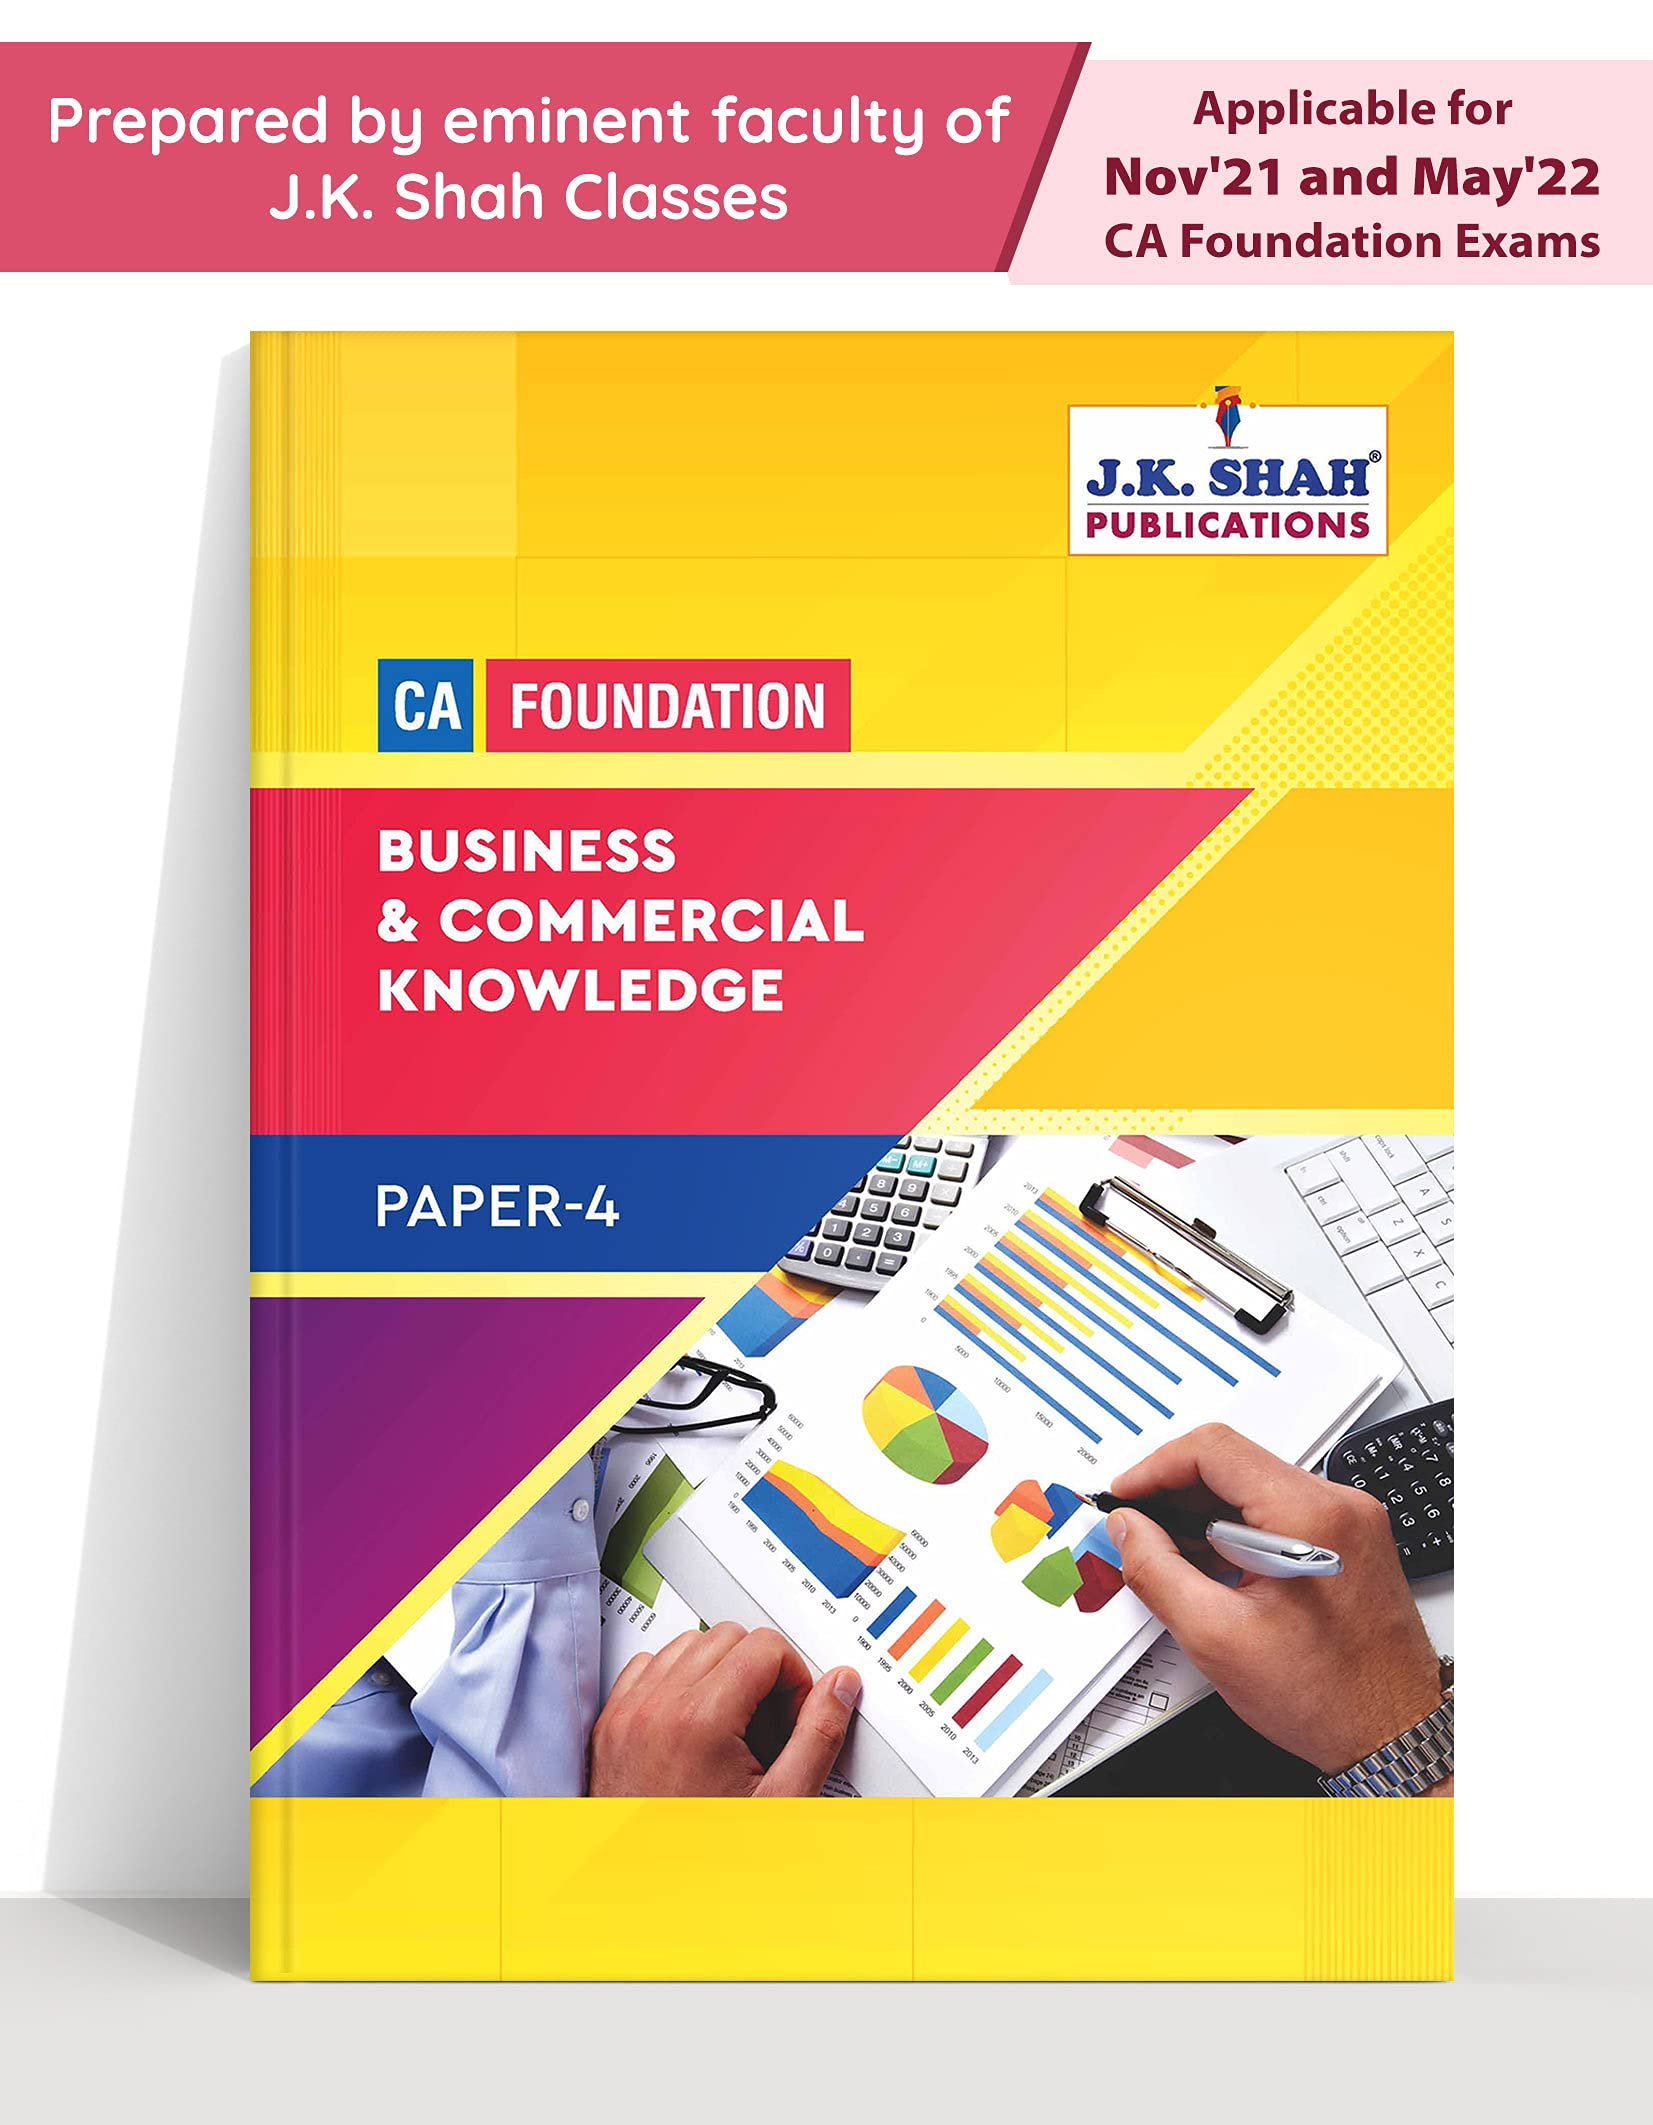 ICAI CA Foundation Exam Notes | Paper 4 Business & Commercial Knowledge |Prepared by faculty of JK Shah Classes | Nov 21, May 22 Exam | Theory & MCQs